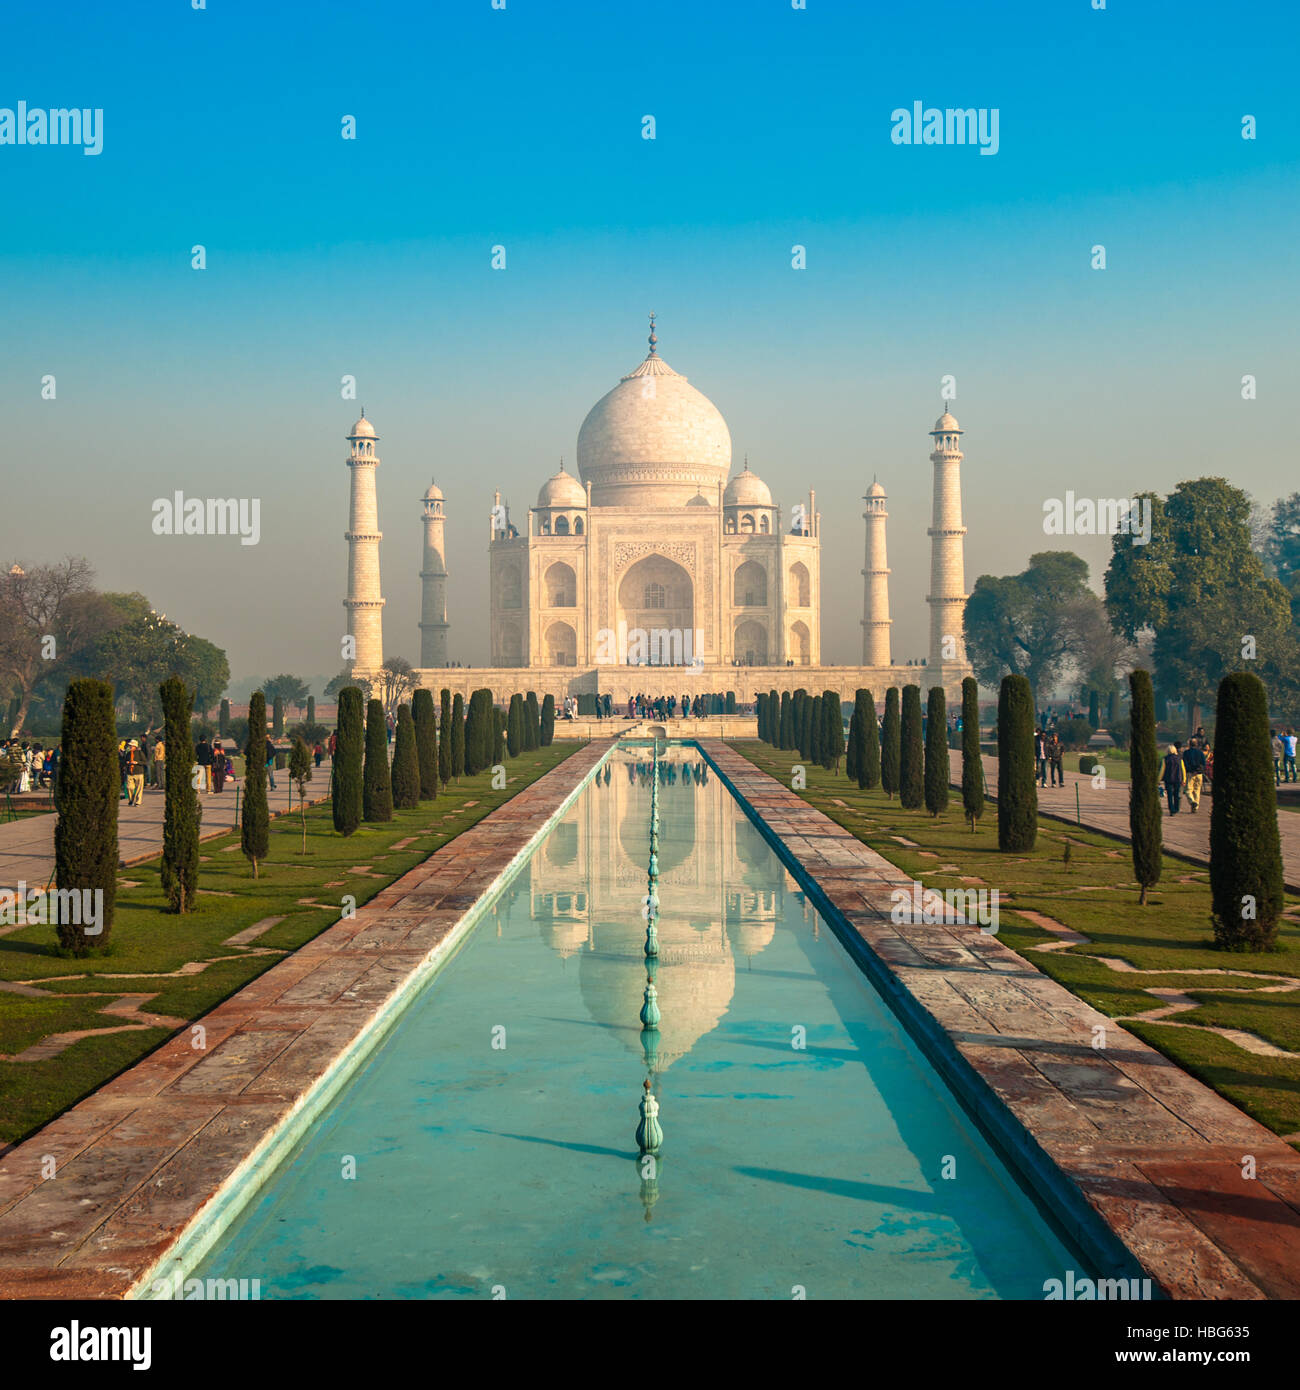 Taj Mahal, Agra, India - Stock Image